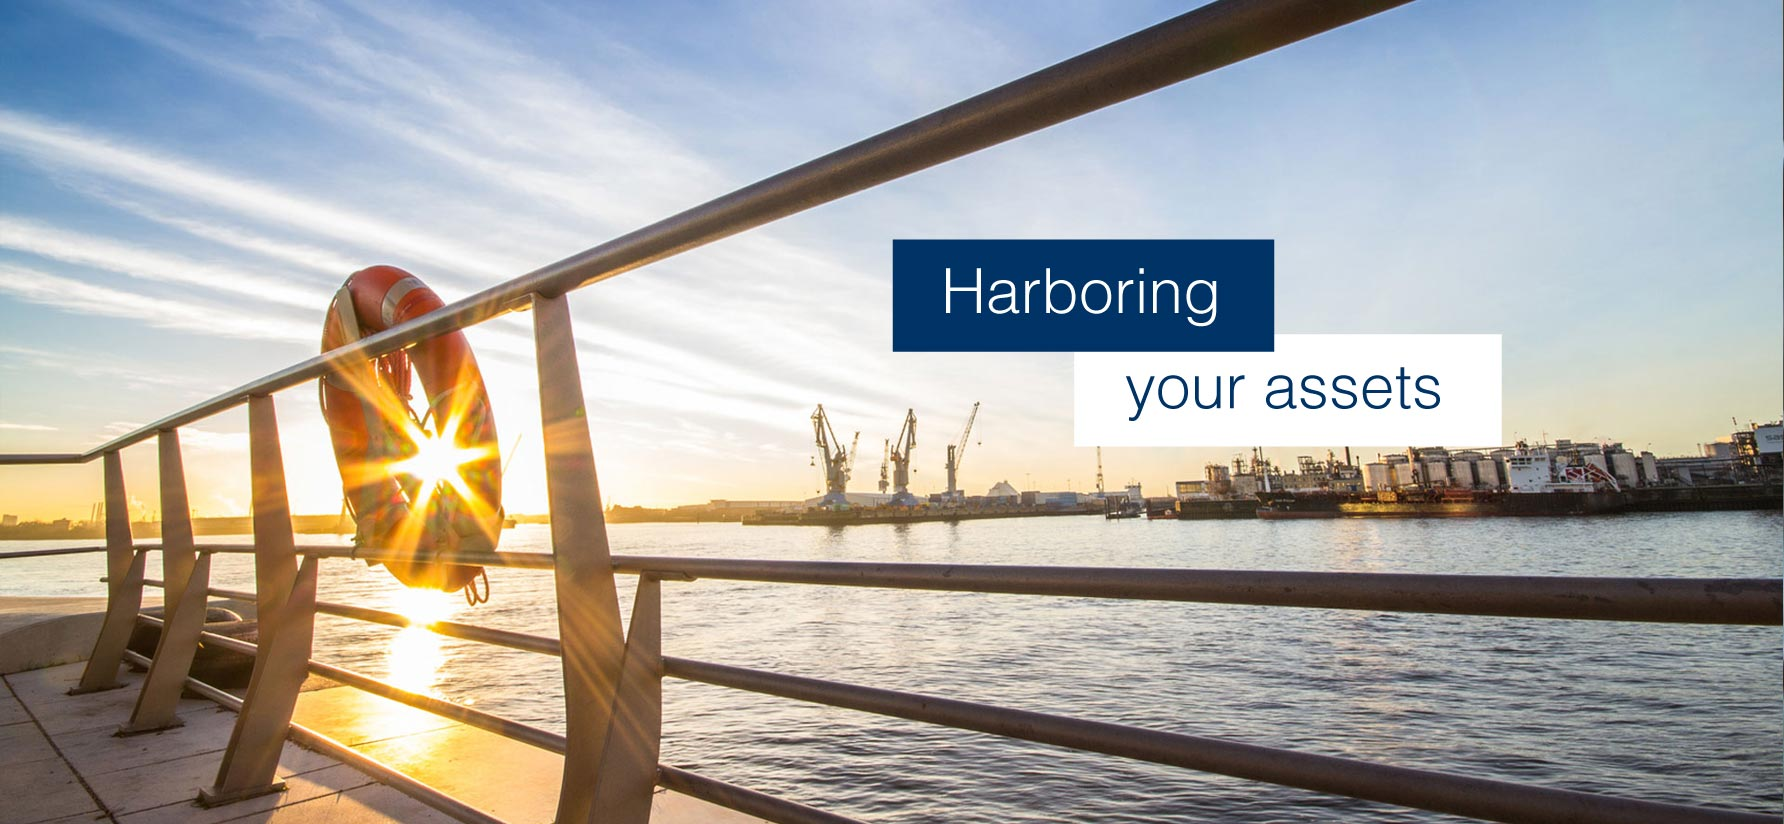 Pier Investment Partner - Harboring your assets